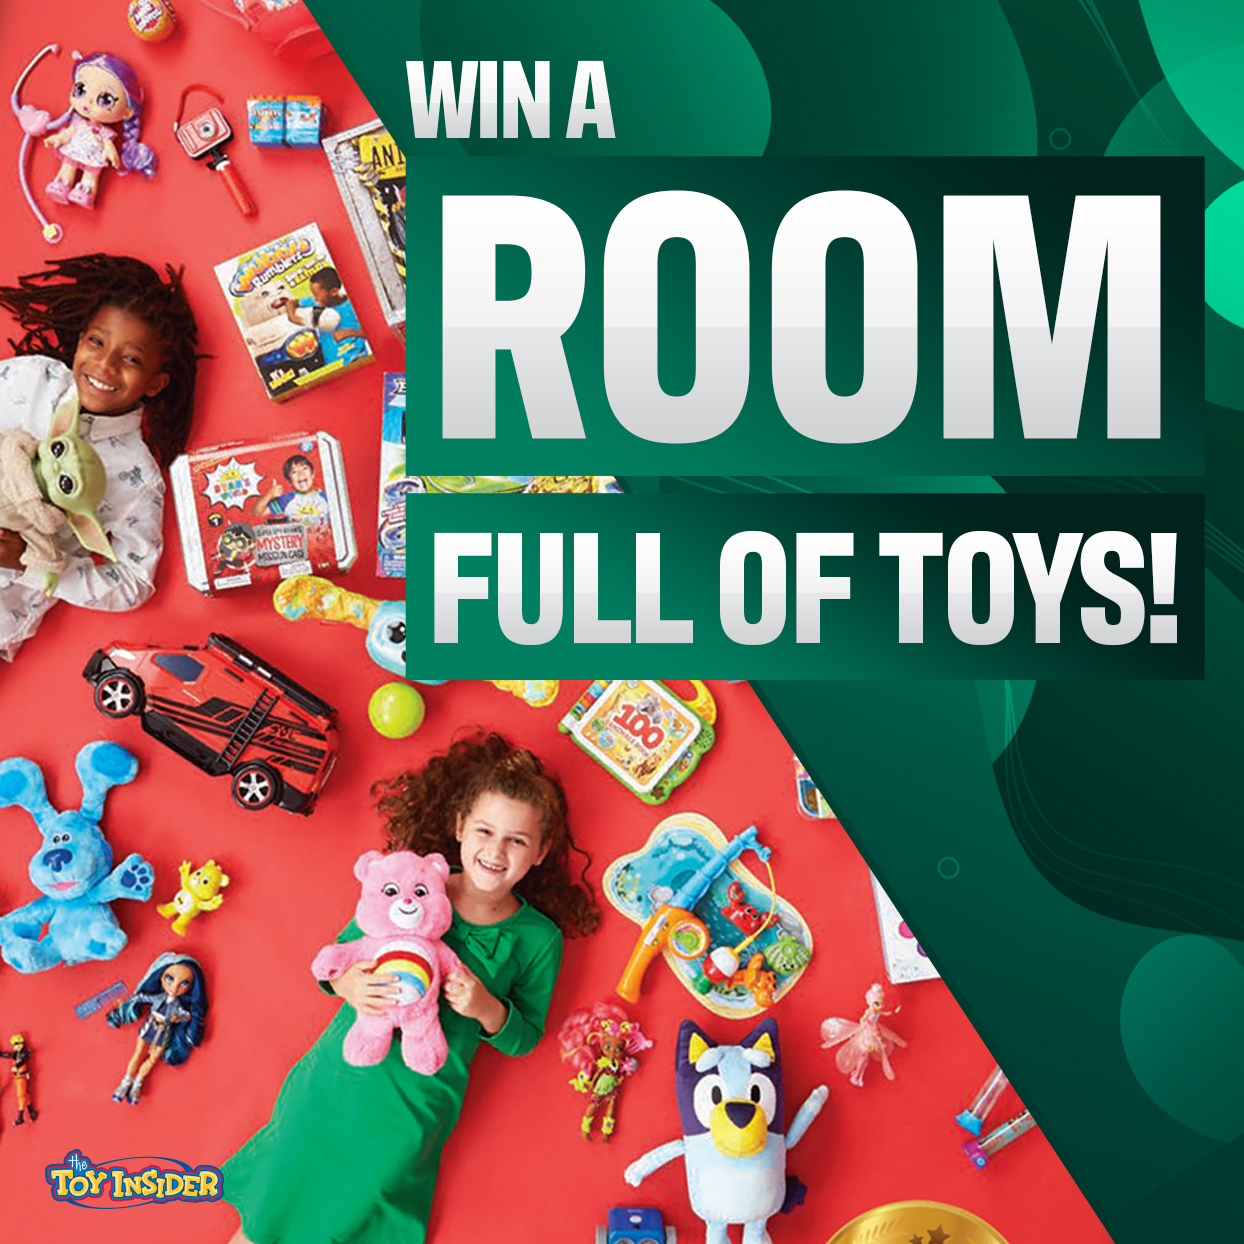 The Toy Insider's Holiday Toy Sweepstakes